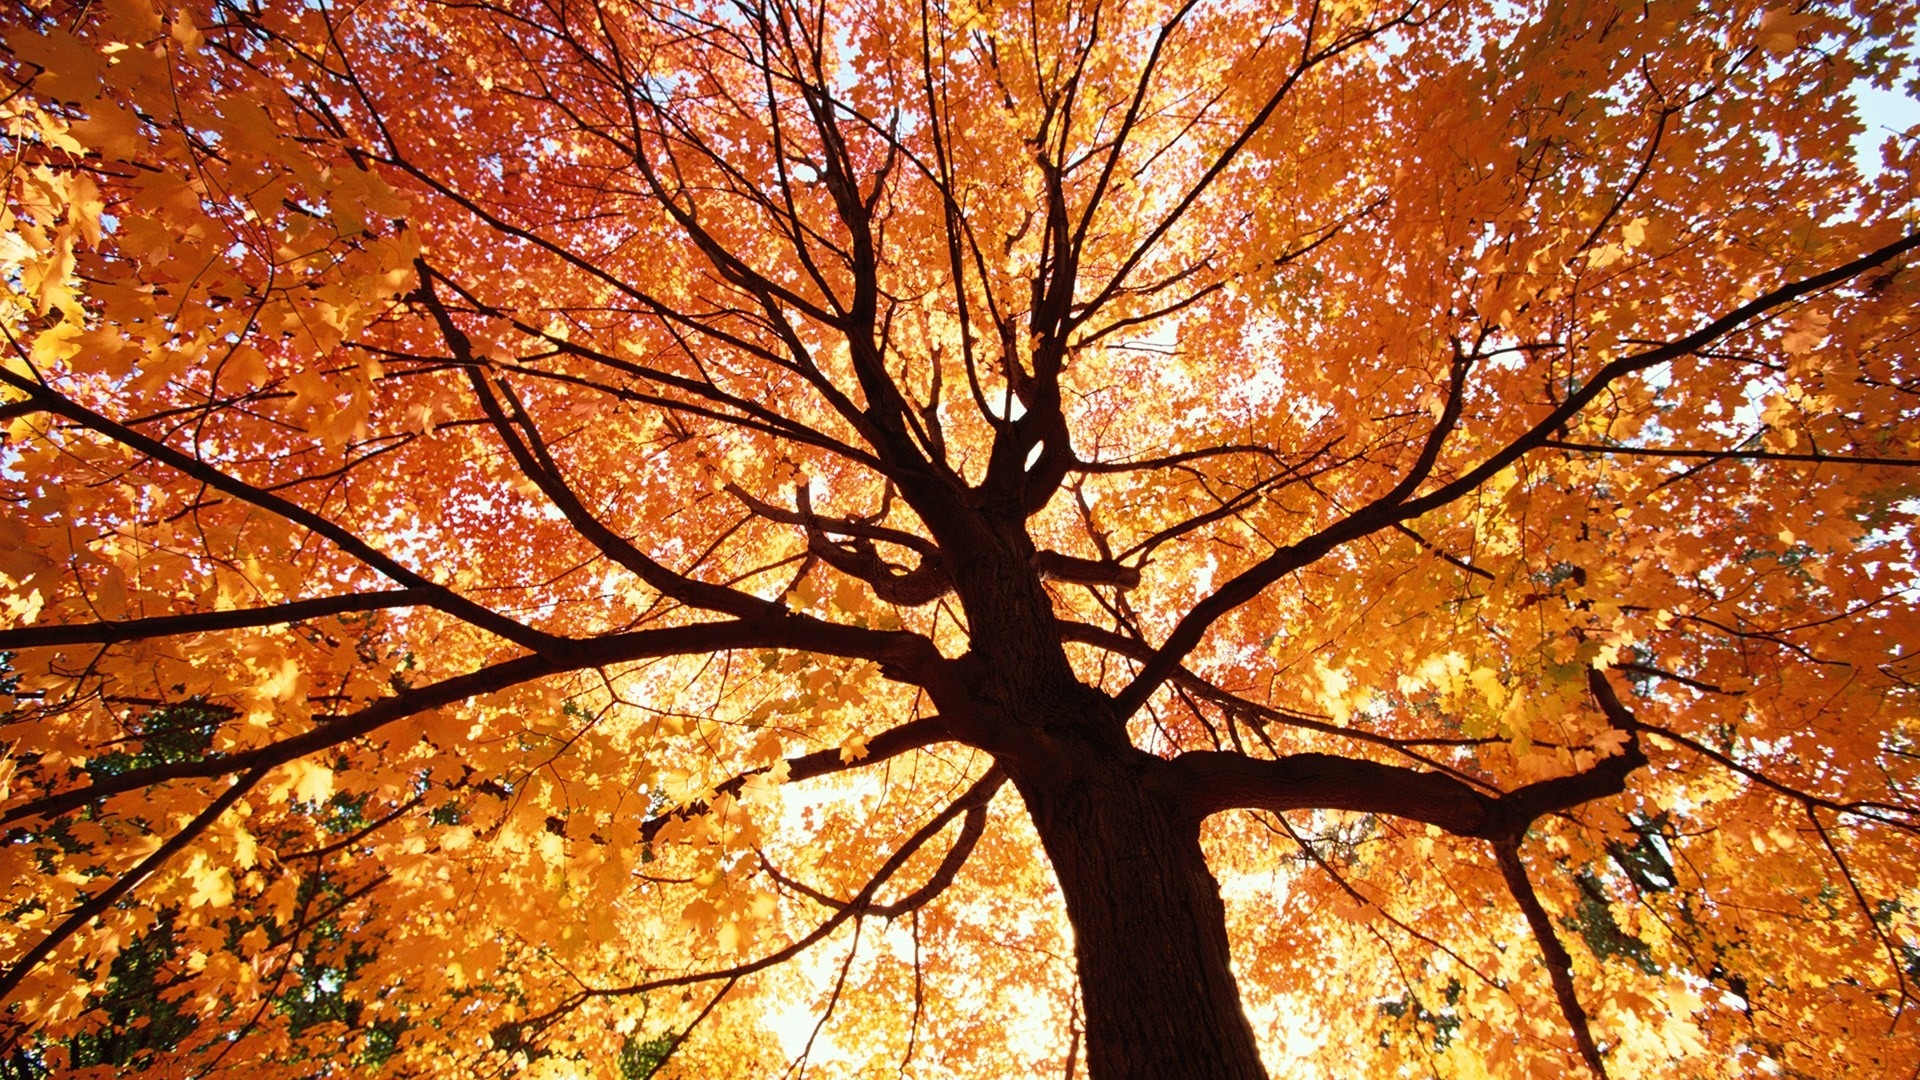 Autumn - Autumn Photo (35926505) - Fanpop